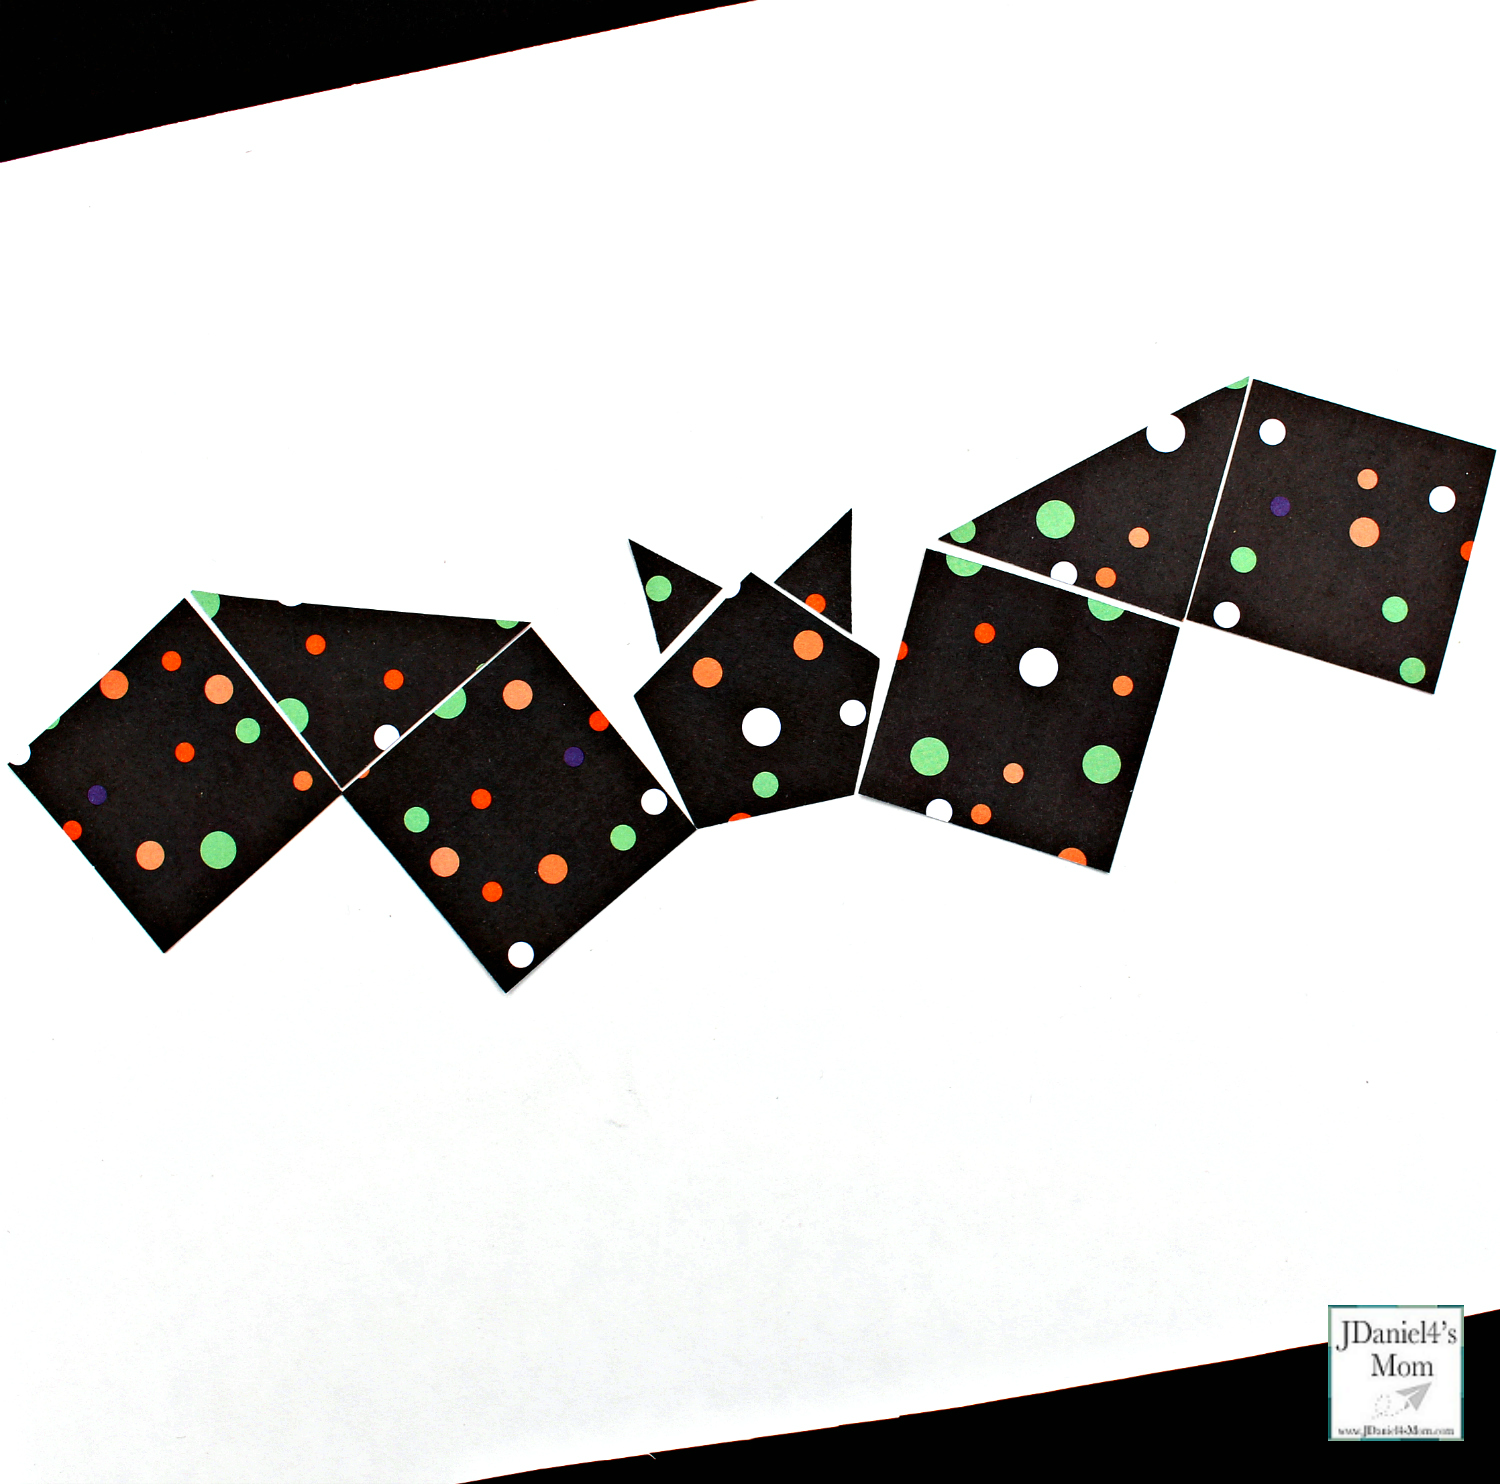 Halloween Bat Crafts That Explore Shapes - Made with Polka Dot Paper